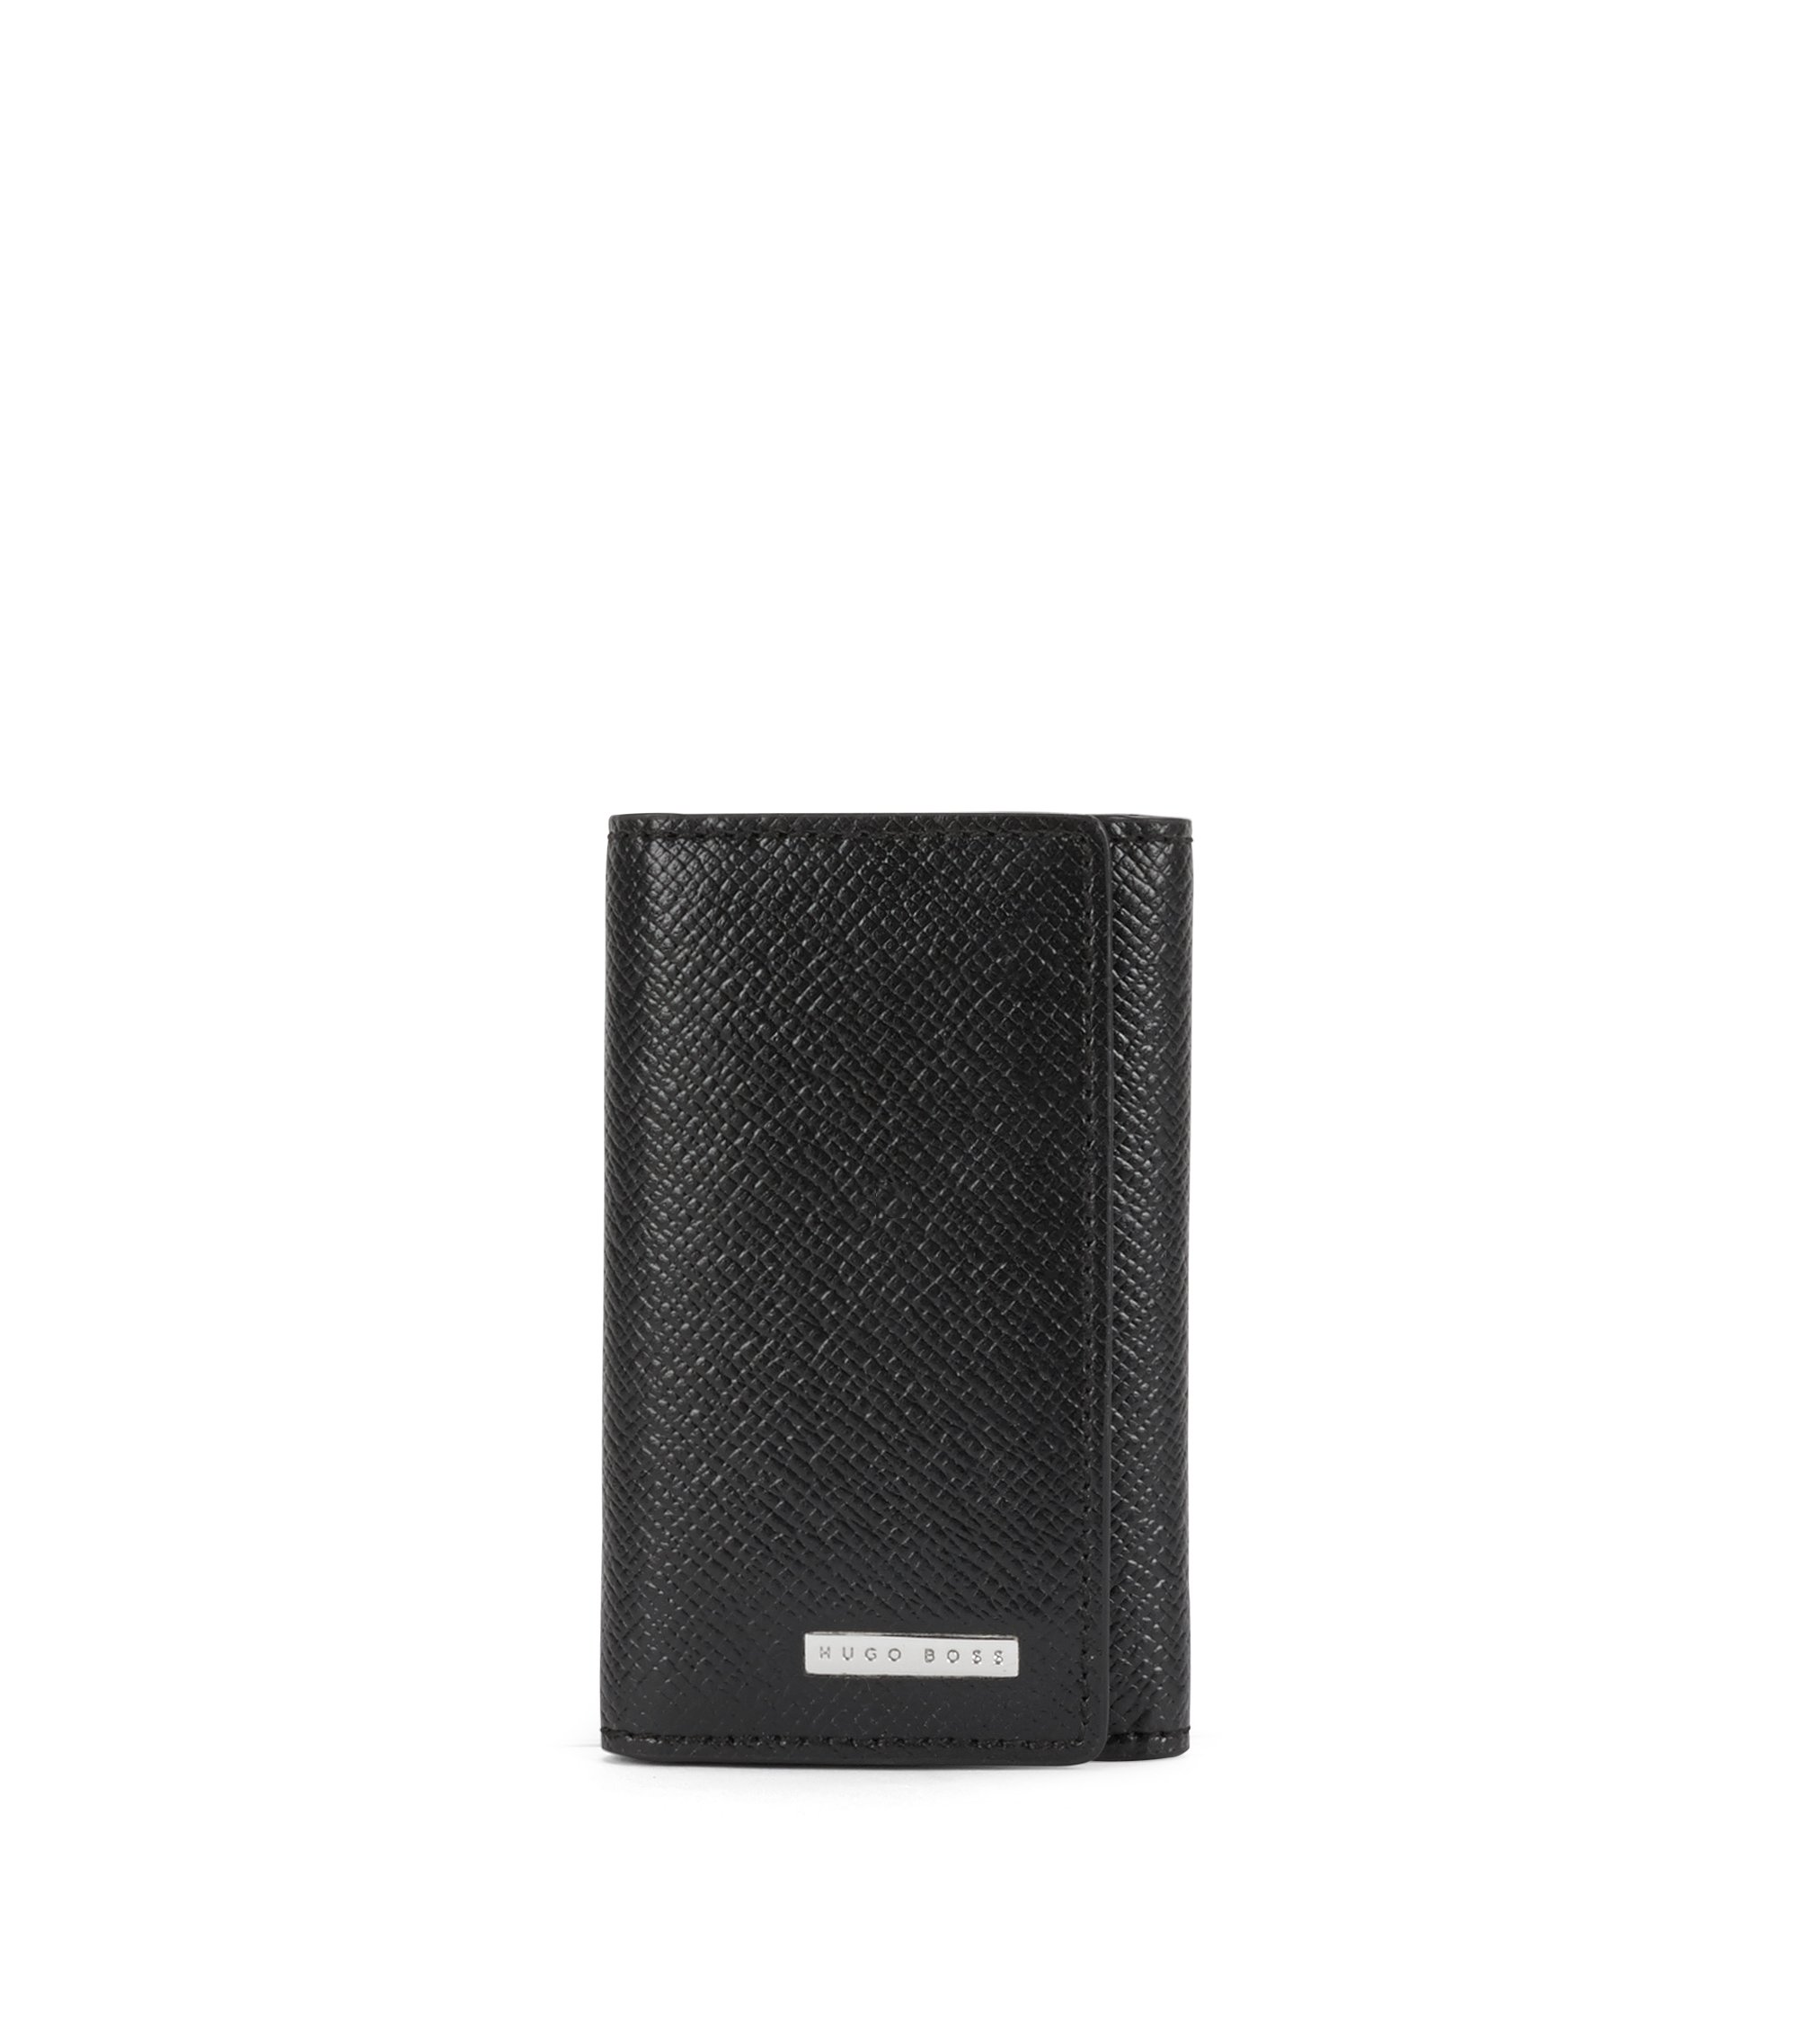 Embossed Leather Key Holder | Signature 7 Keys, Black